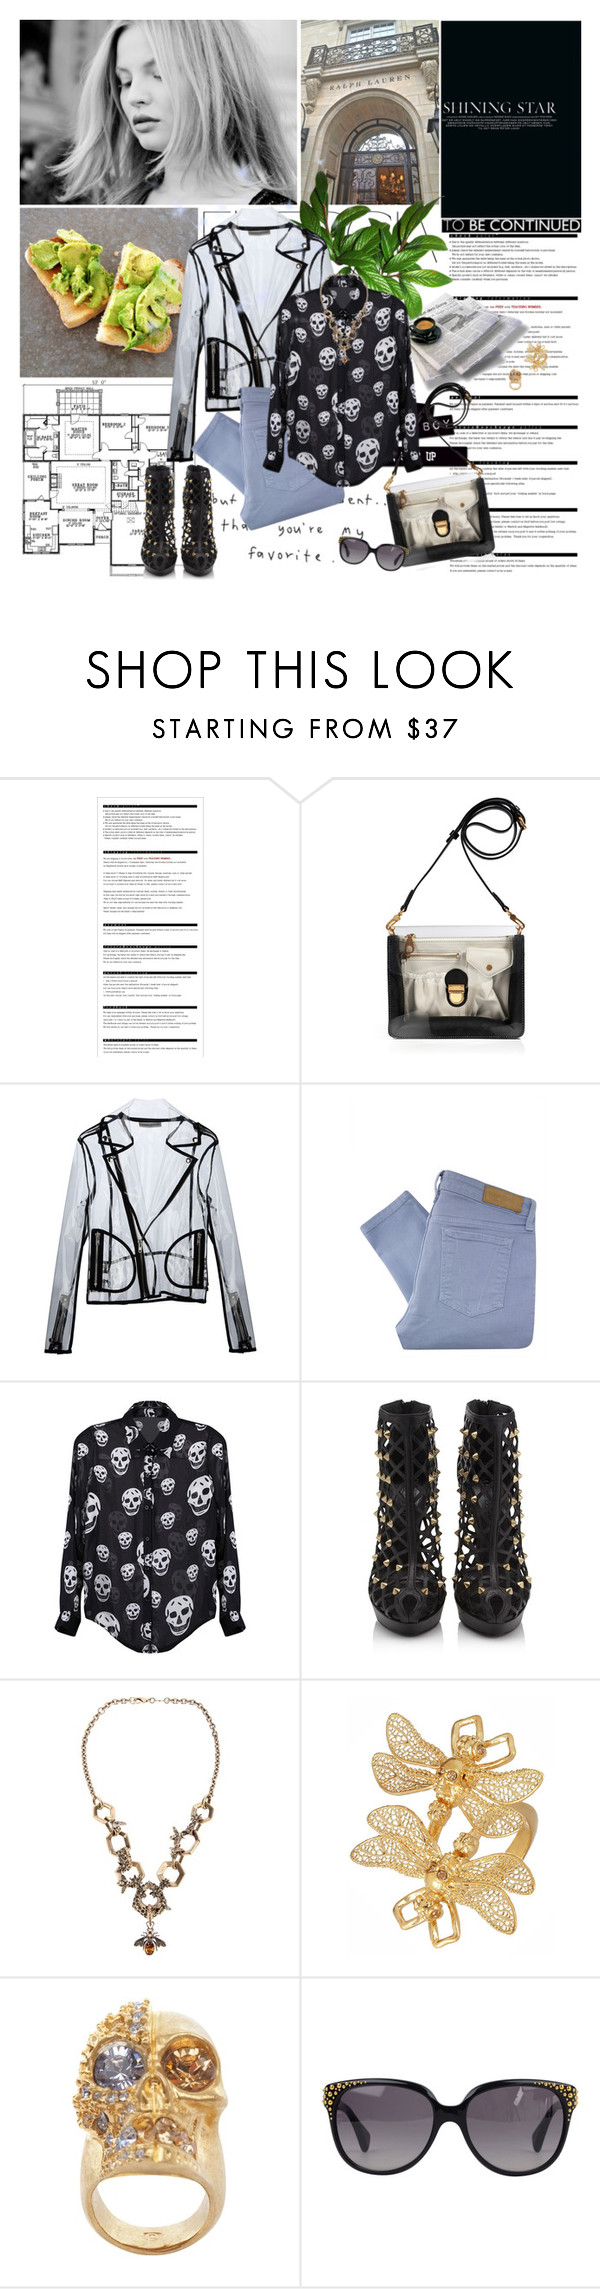 """""""Skulls Will ALWAYS Be the ALEXANDER MCQUEEN Thing"""" by gooree ❤ liked on Polyvore featuring Victoria's Secret, Arche, Magdalena, Marc by Marc Jacobs, Wanda Nylon, Victoria Beckham, Alexander McQueen, cutout booties, skull jewelry and skull shirts"""